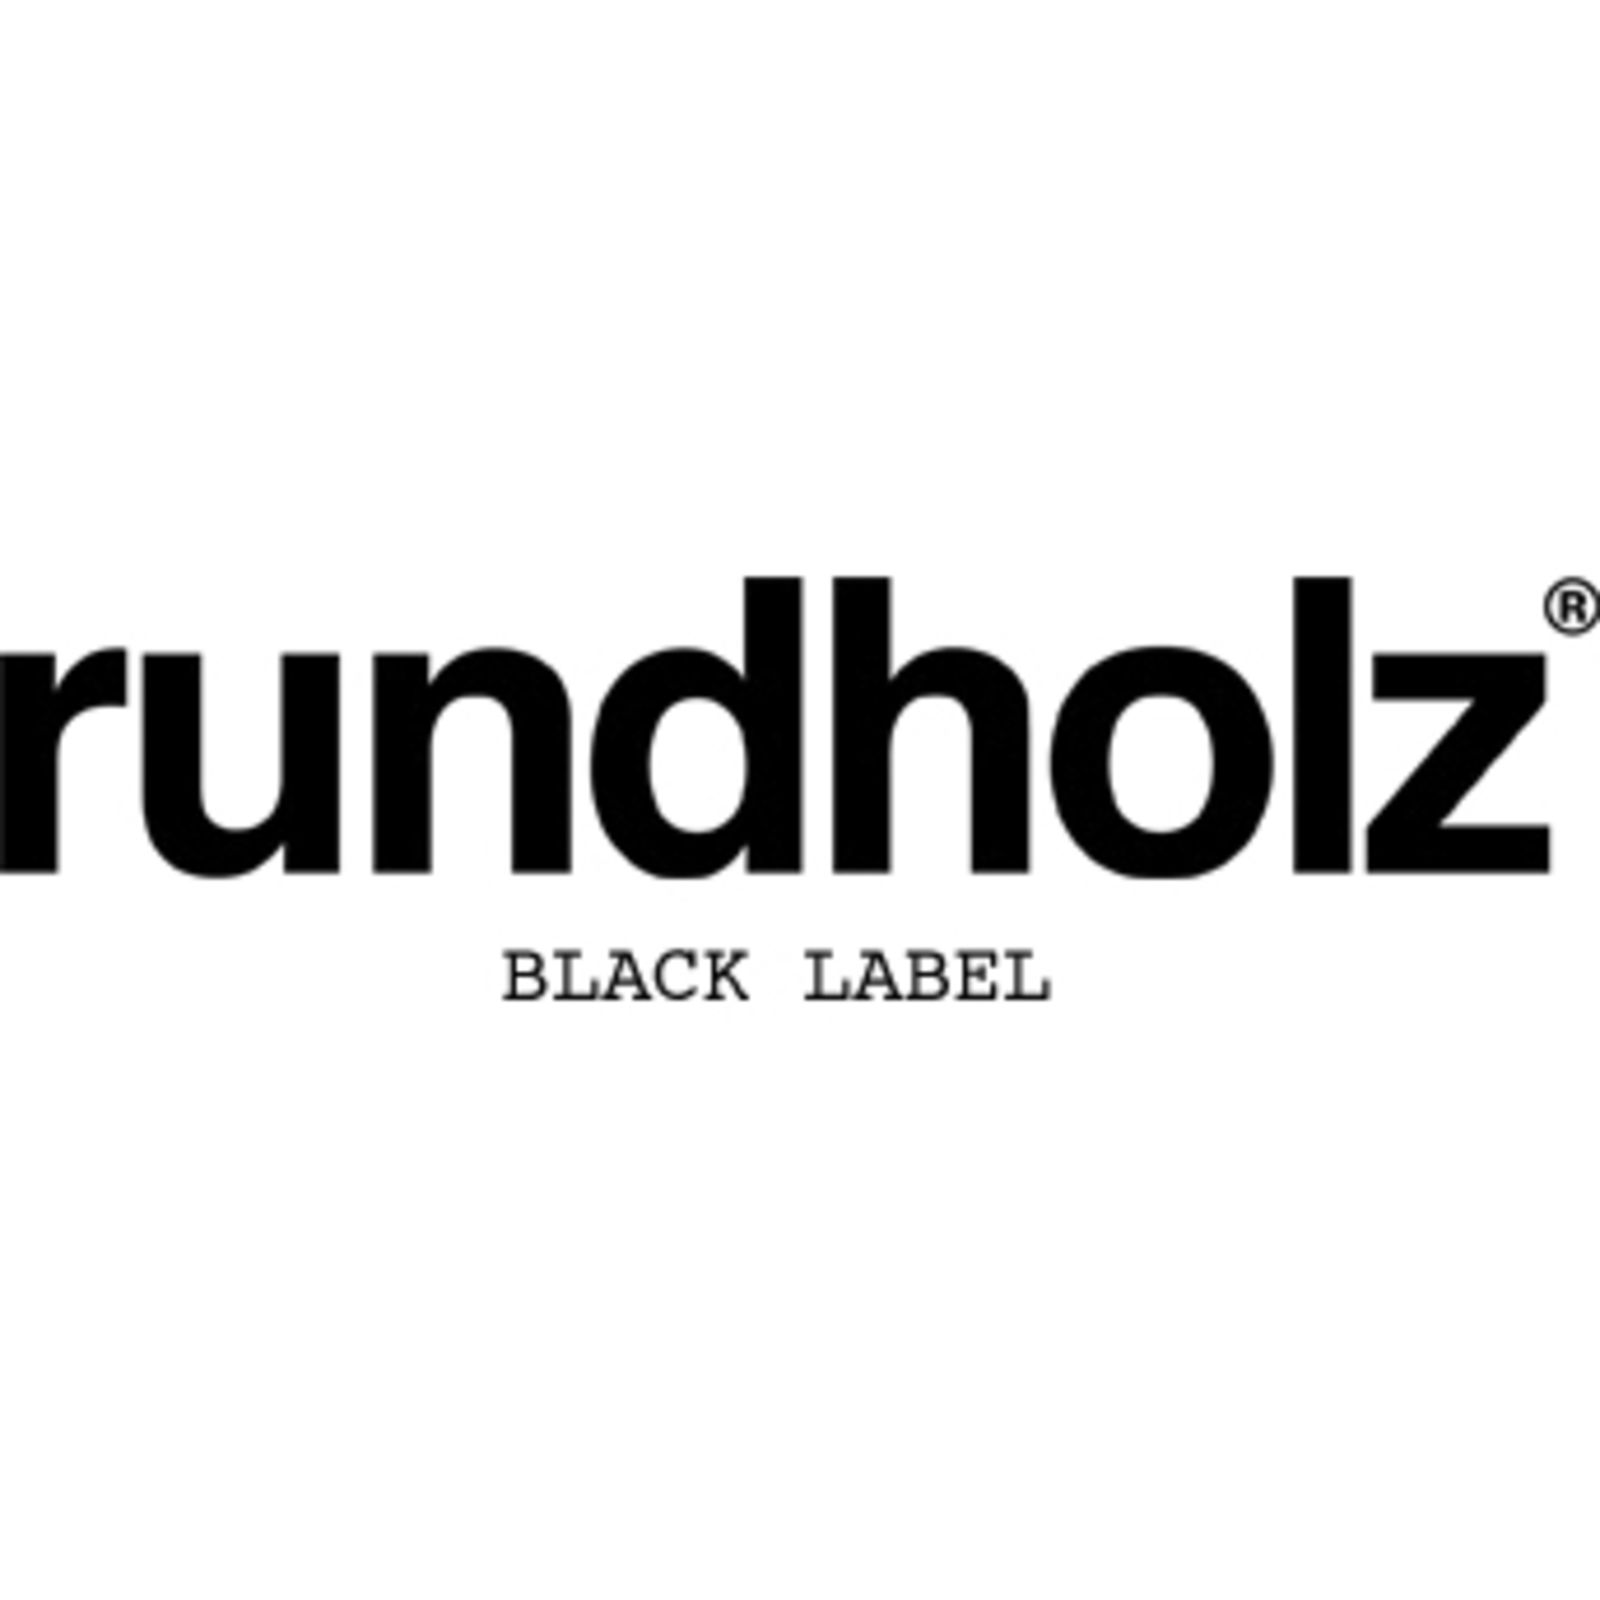 rundholz black label